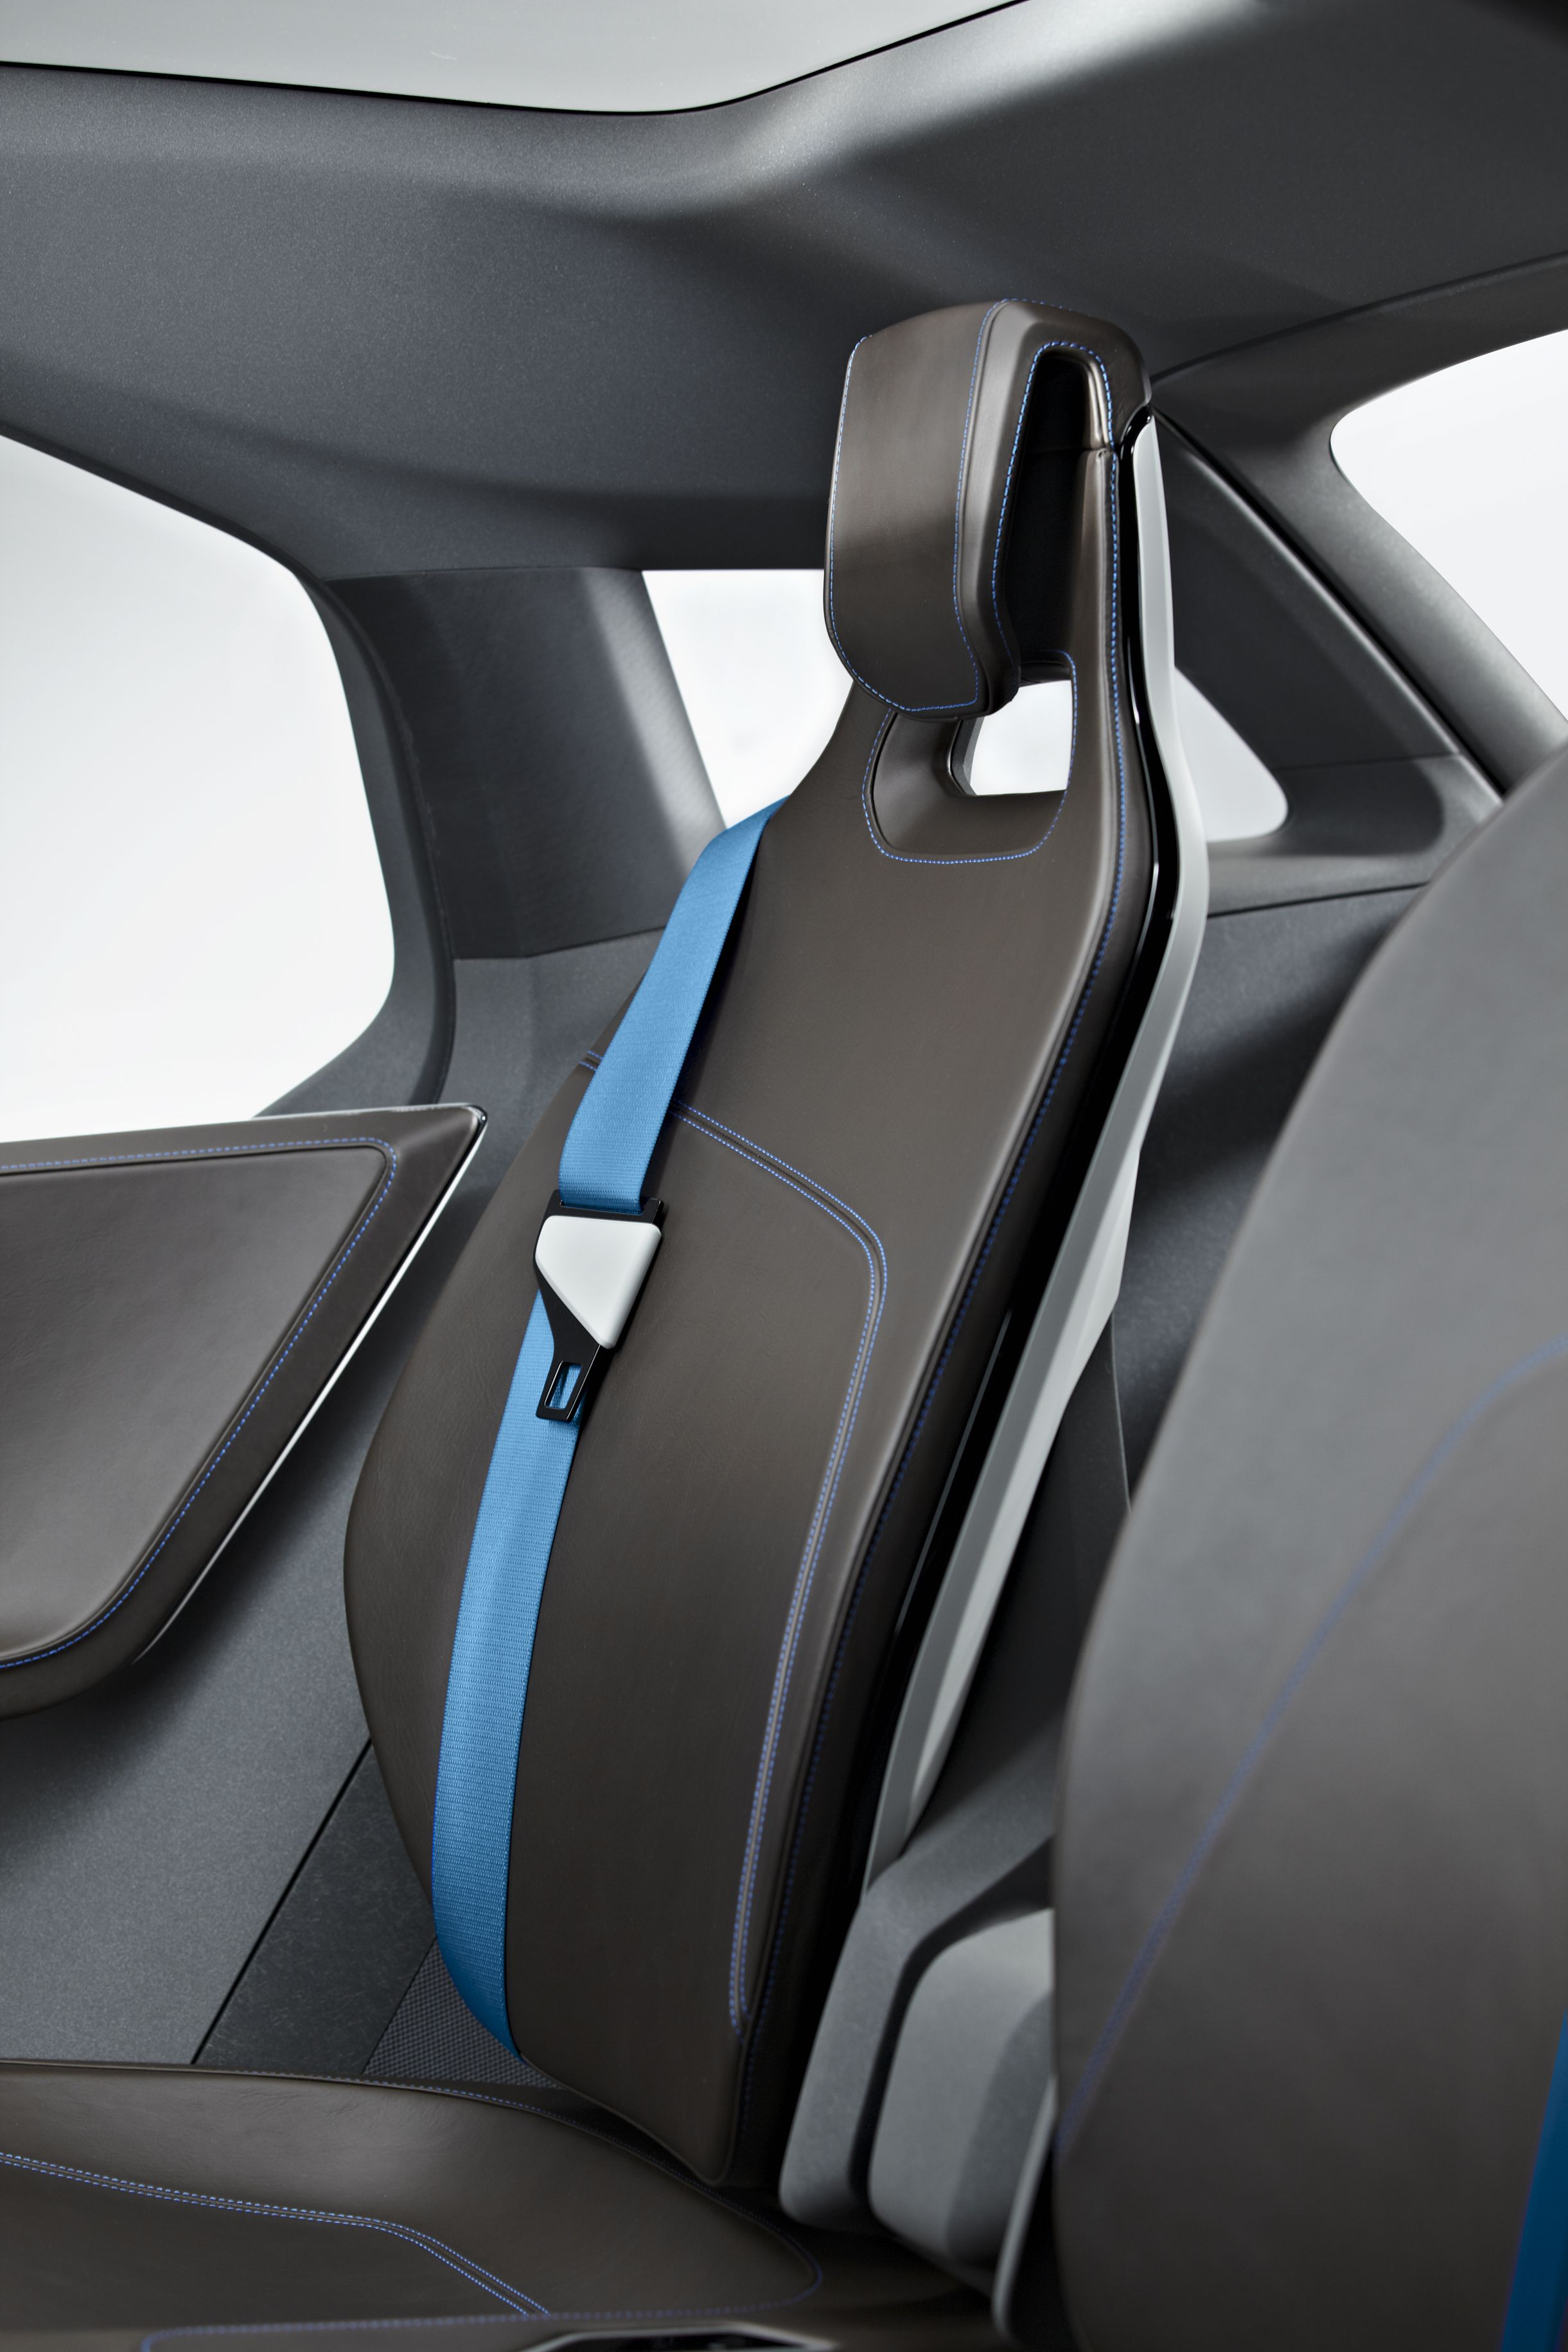 Bmw I3 Concept Edrive Burn Electric Sheerdrivingpleasure Iperformance Fresh Air Green City Live Life Love Automotive Design Bmw I3 Bmw Interior